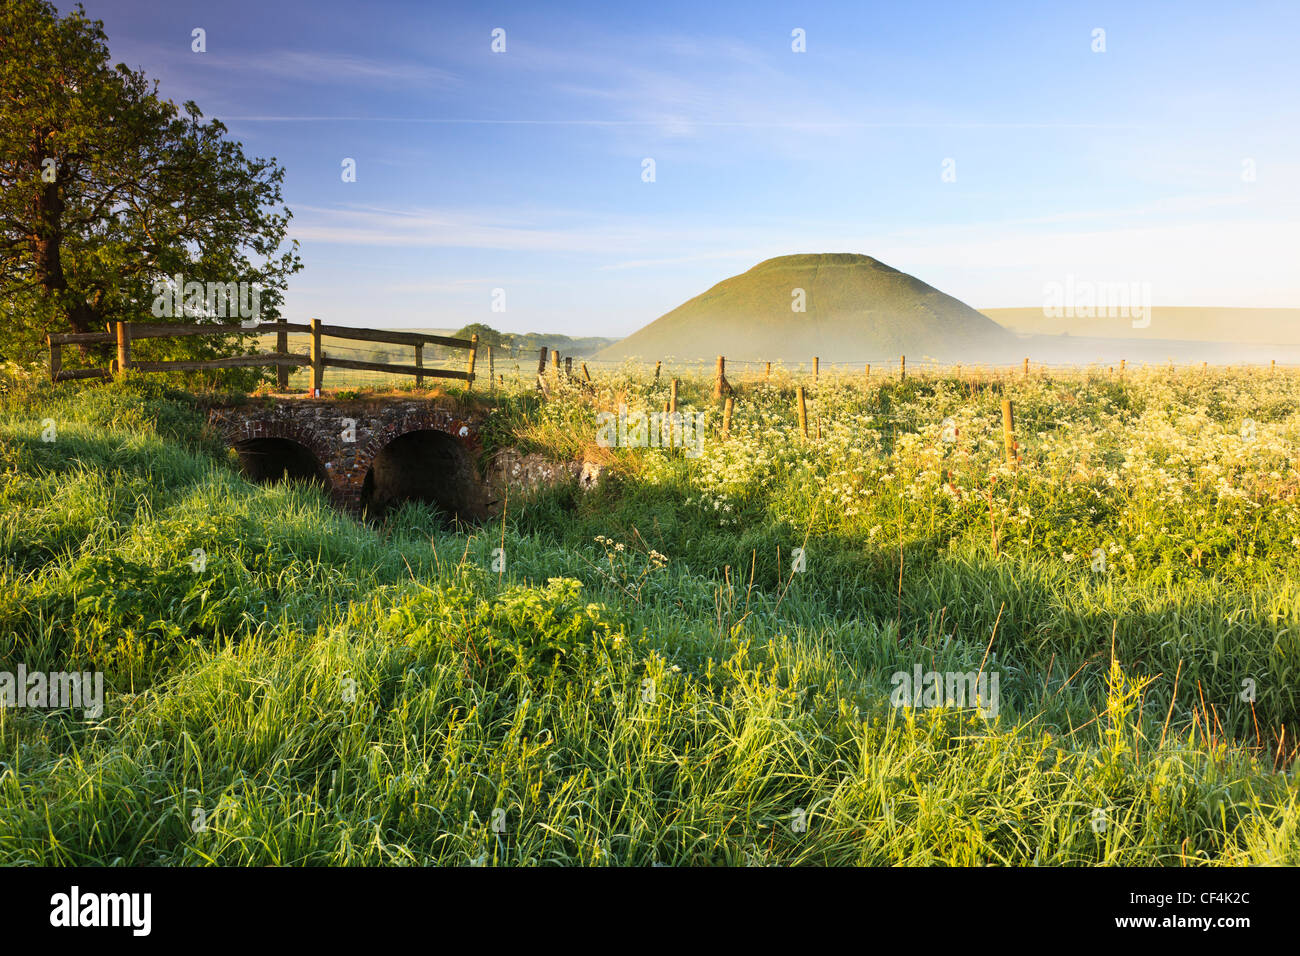 Silbury Hill, an artificial chalk mound, the tallest prehistoric human-made mound in Europe, on a misty summer morning. - Stock Image